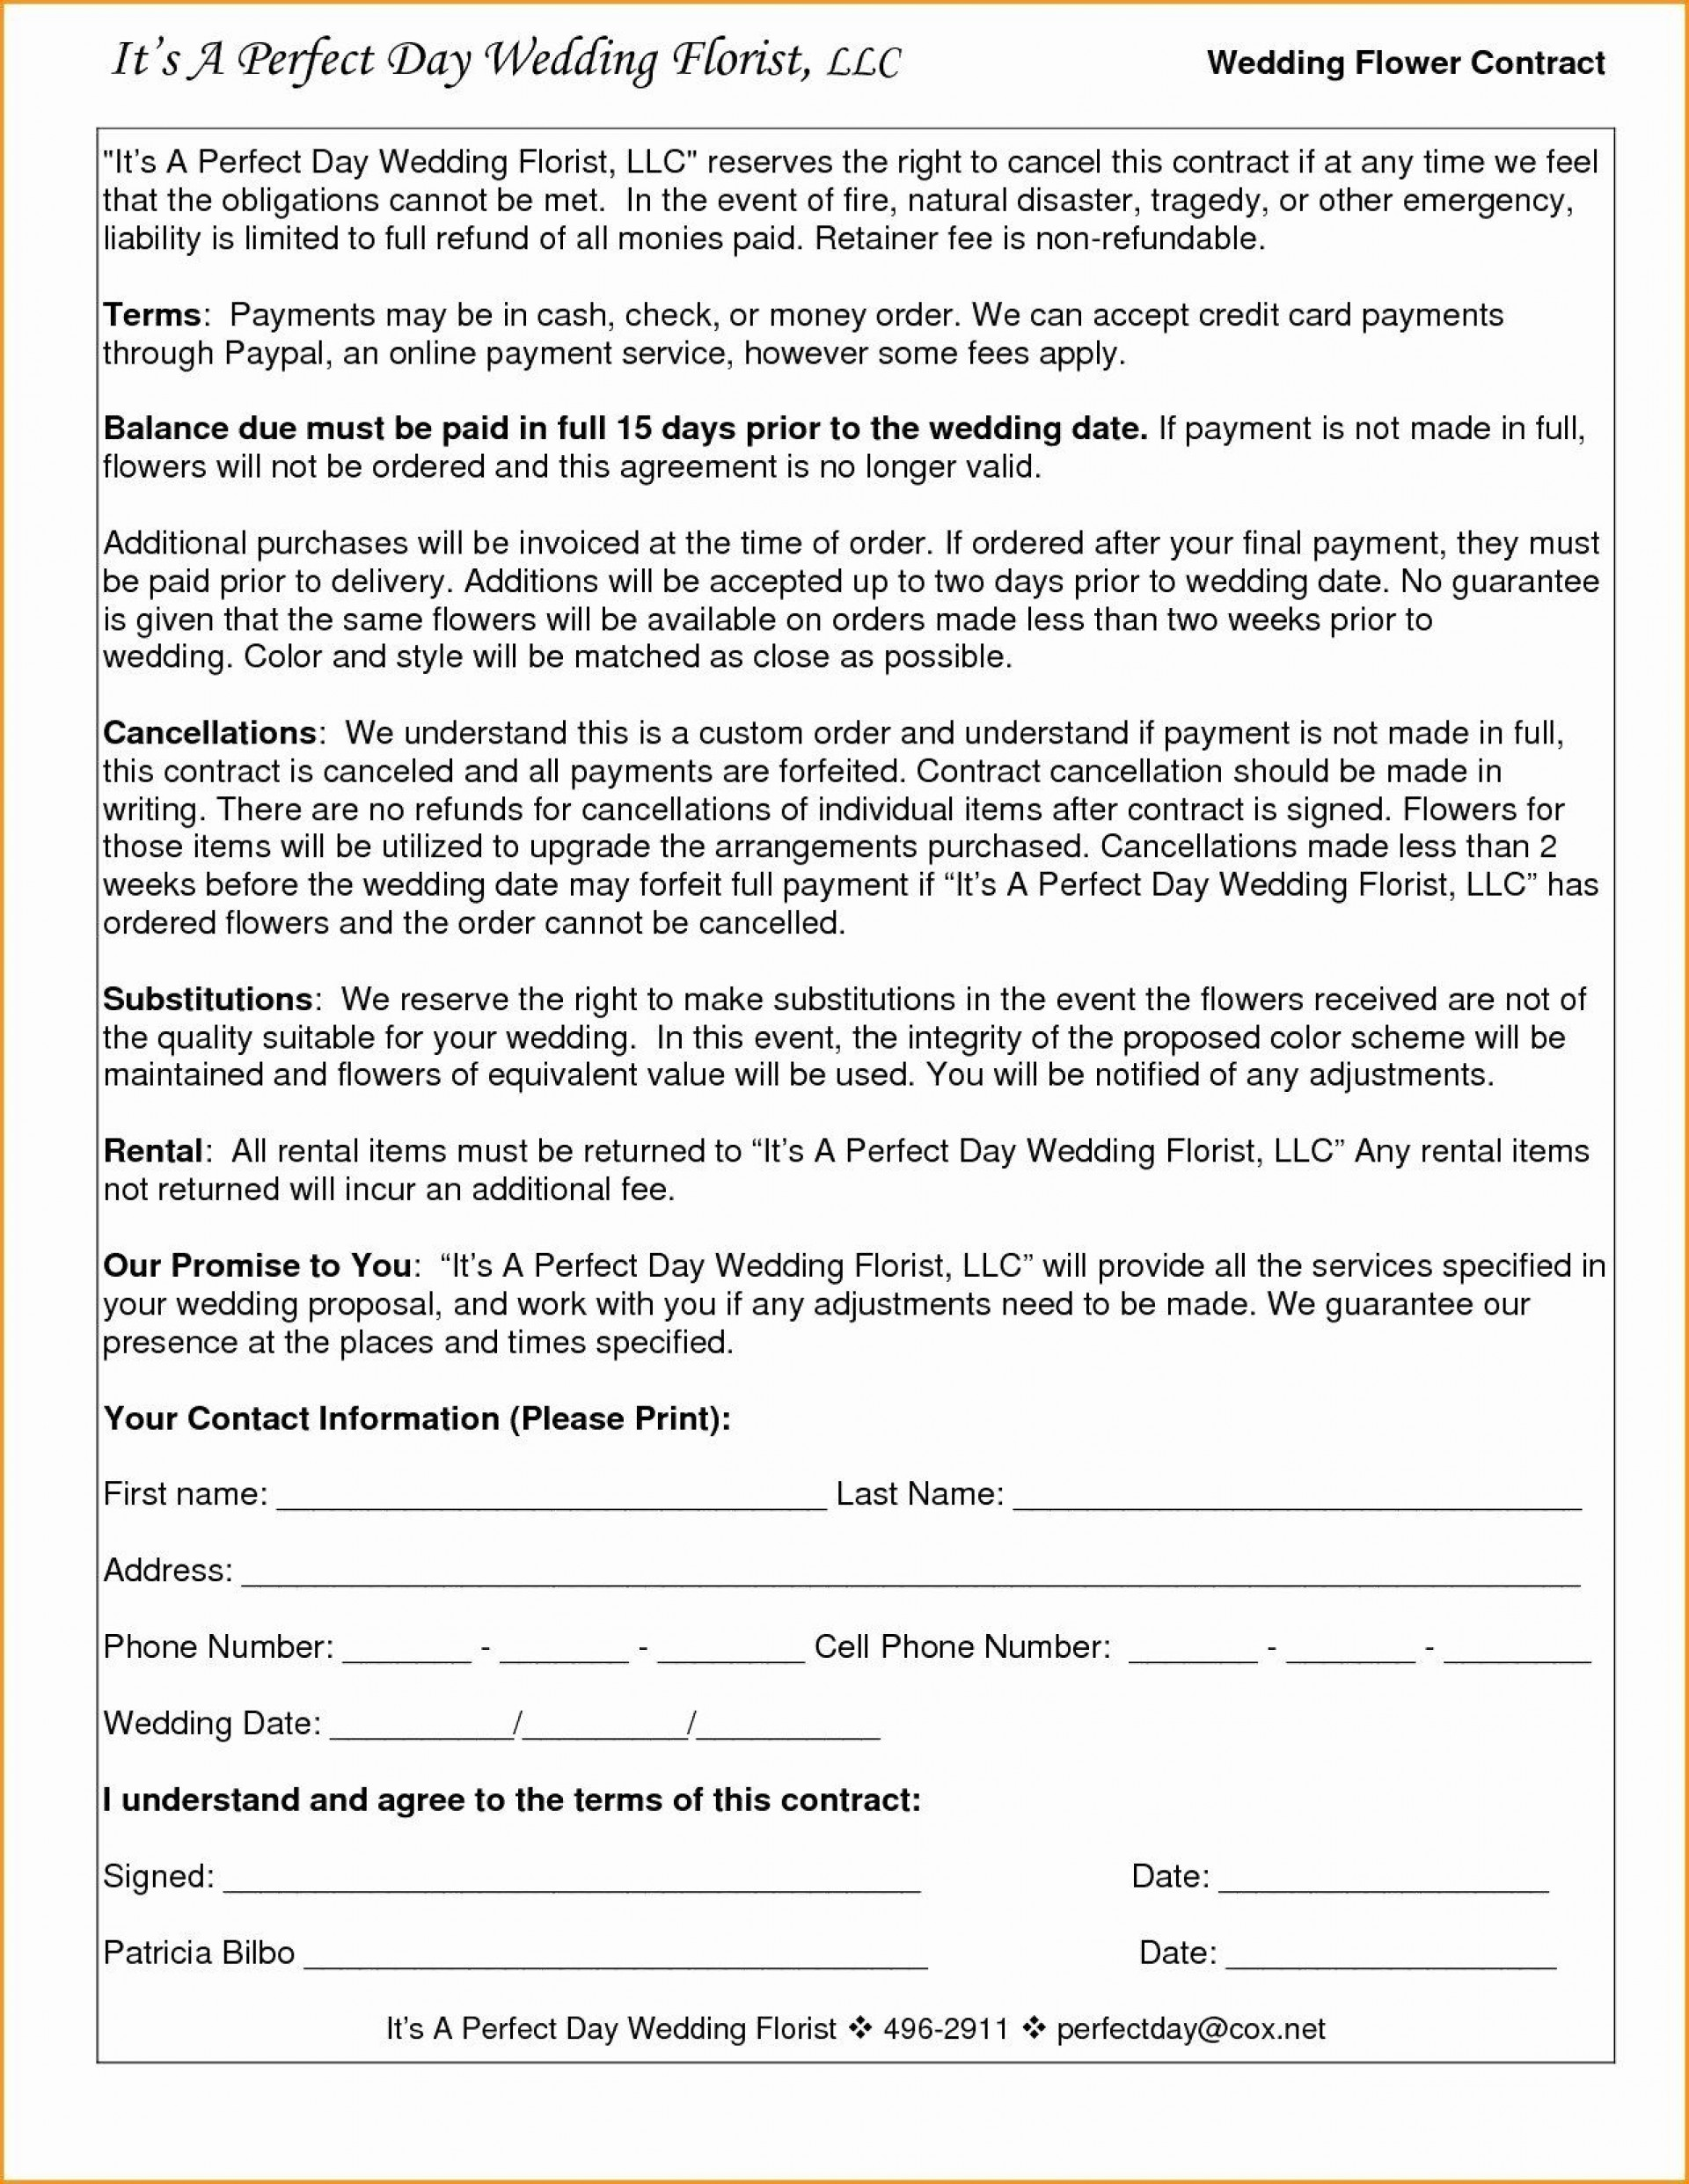 005 Amazing Wedding Videography Contract Template Highest Clarity  Free1920